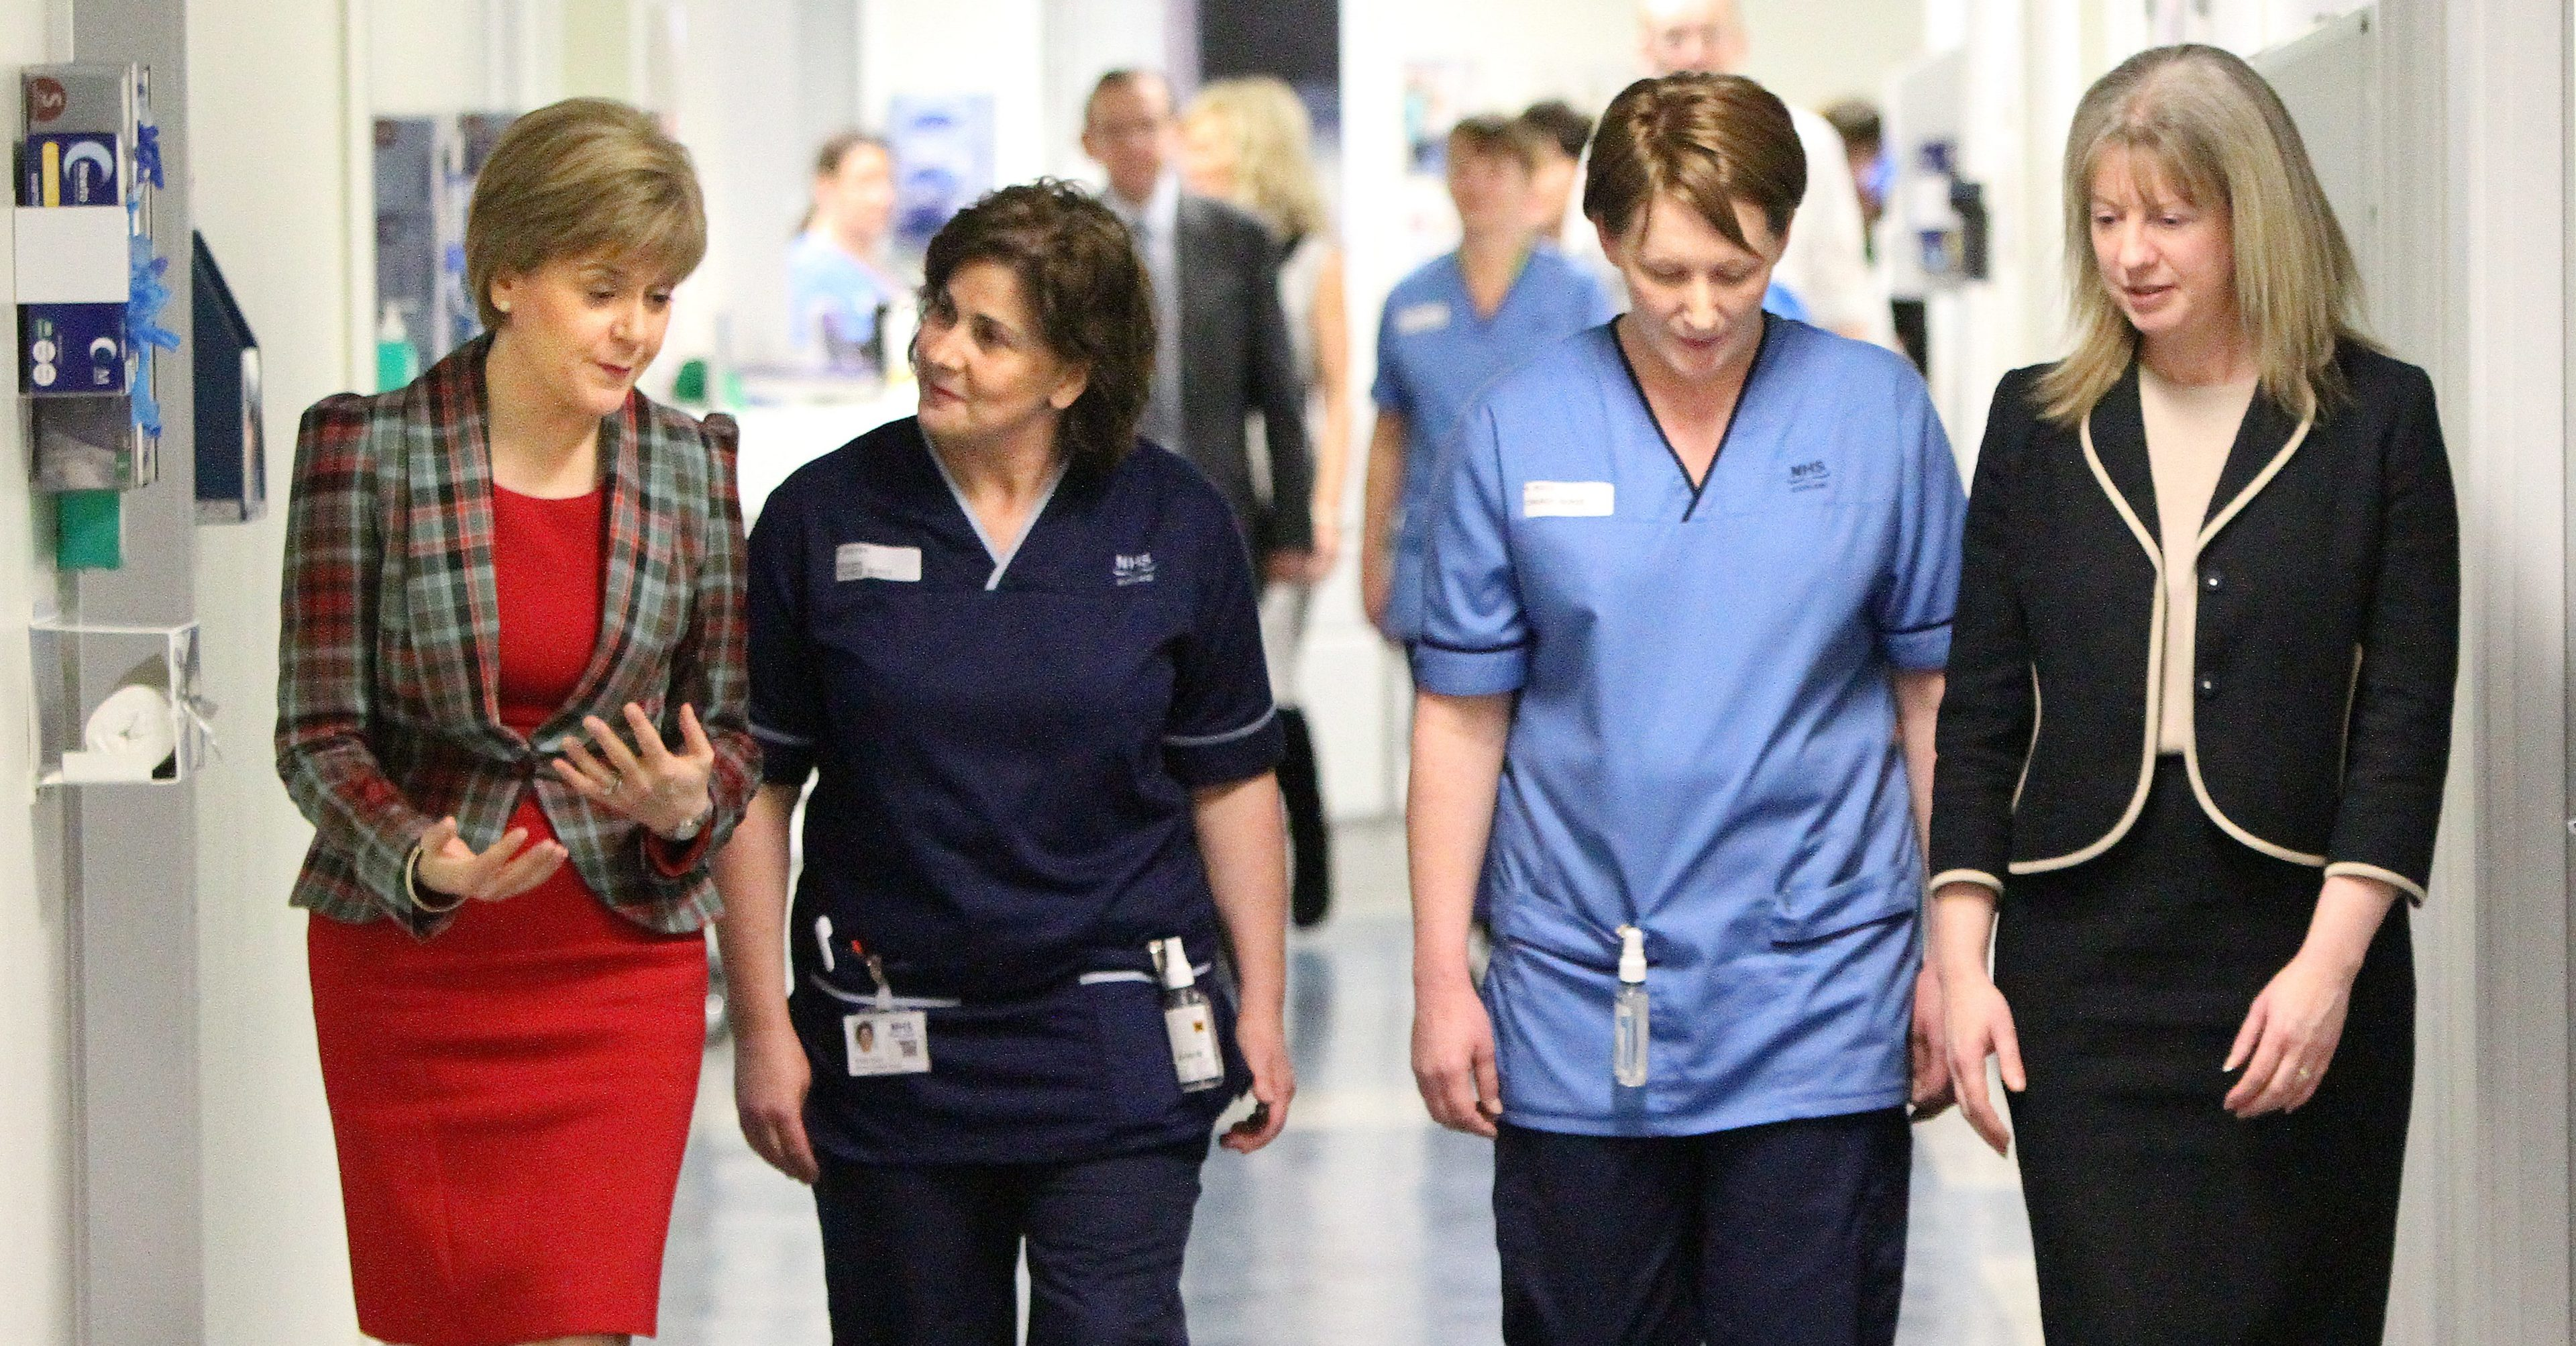 Sturgeon apologised to NHS patients on Monday